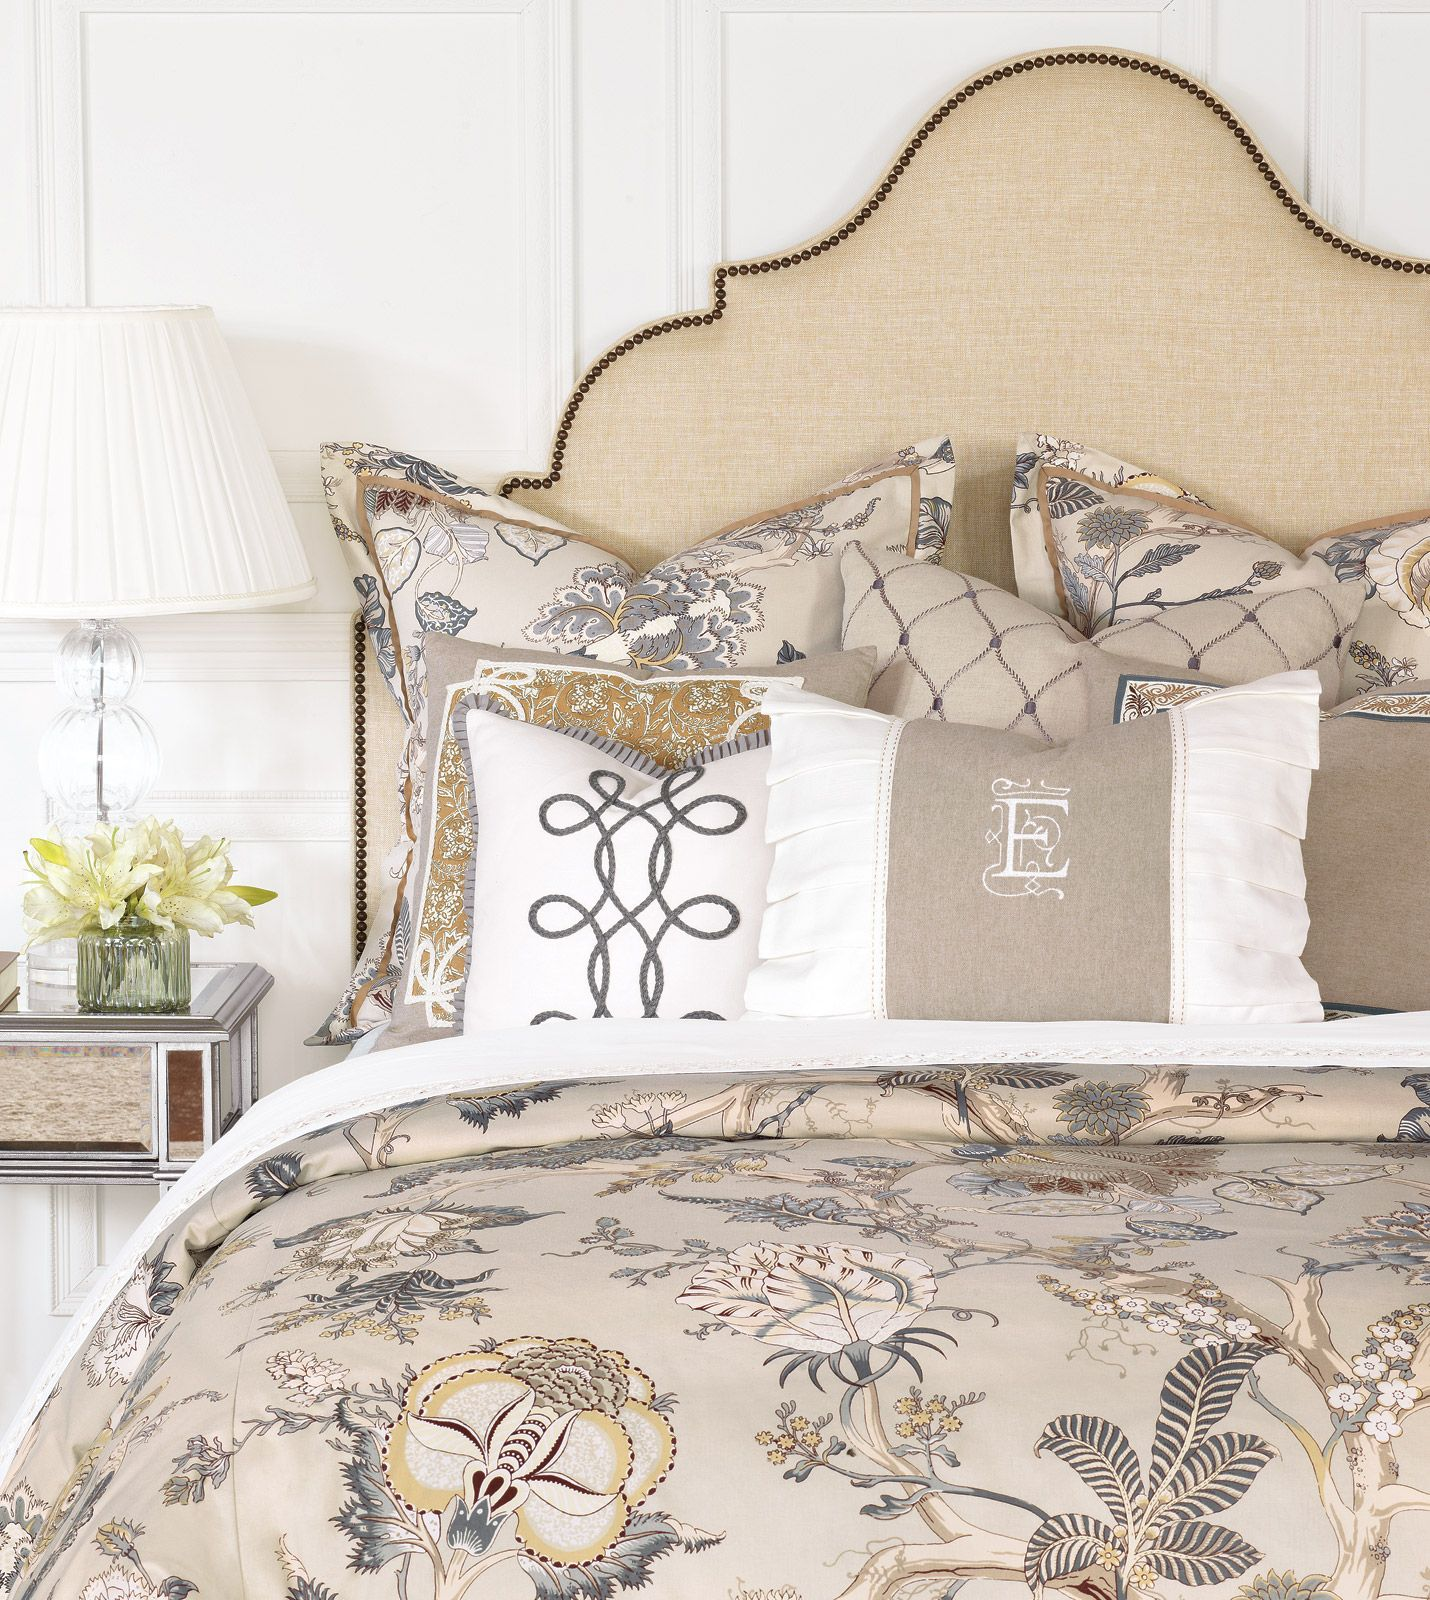 edith bedding eastern accents Quality bedding, Duvet